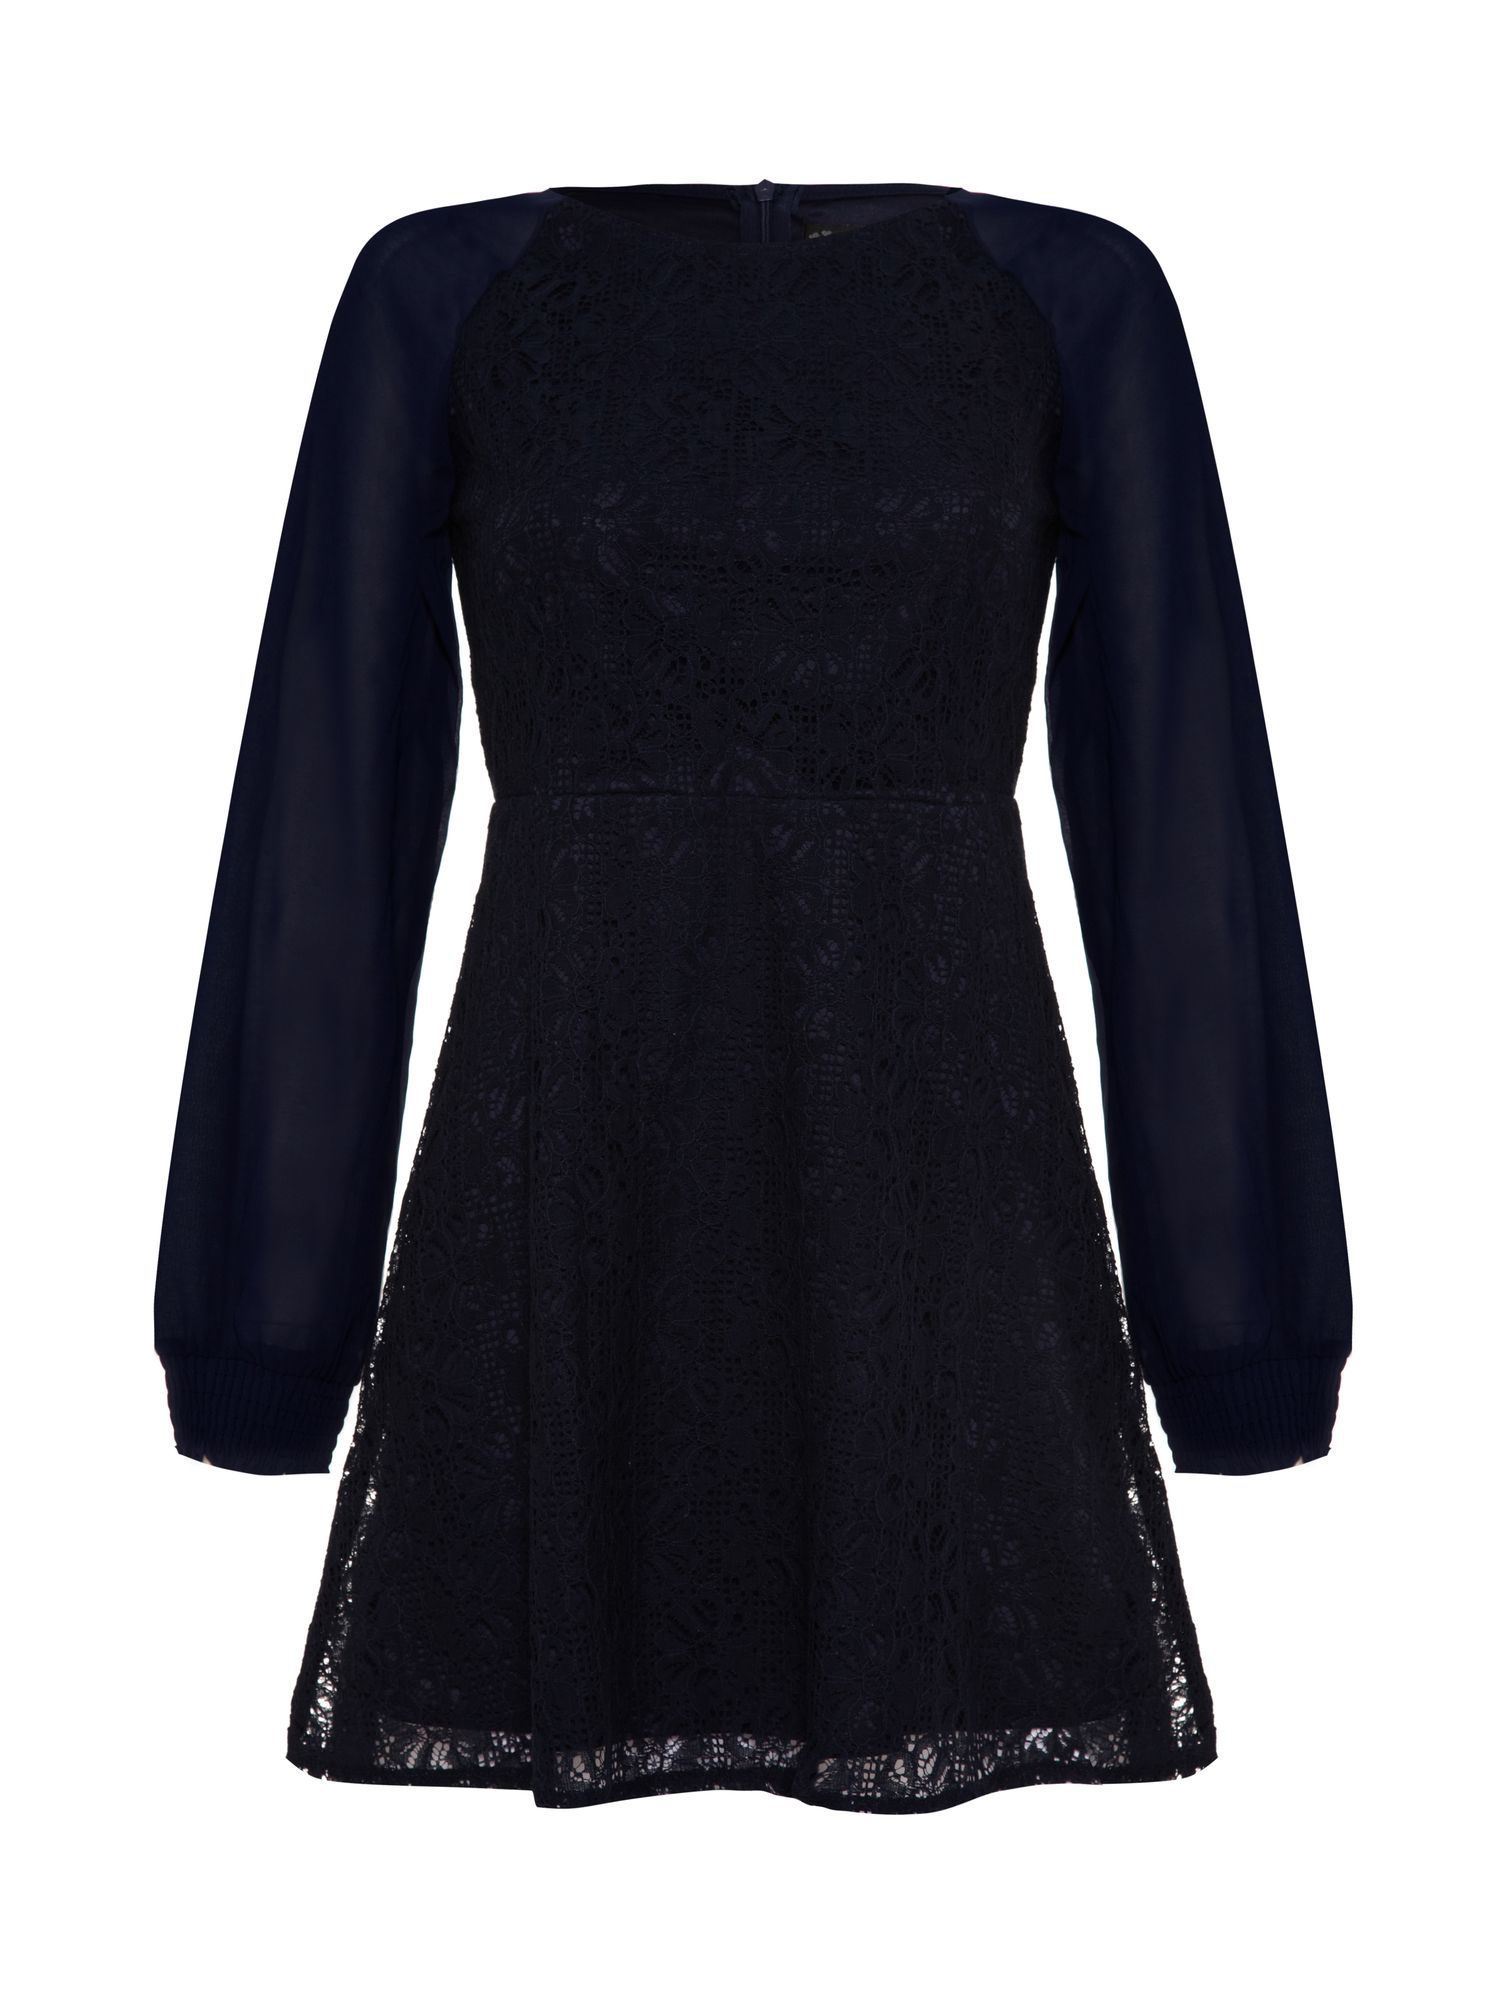 Lace front long sleeved dress